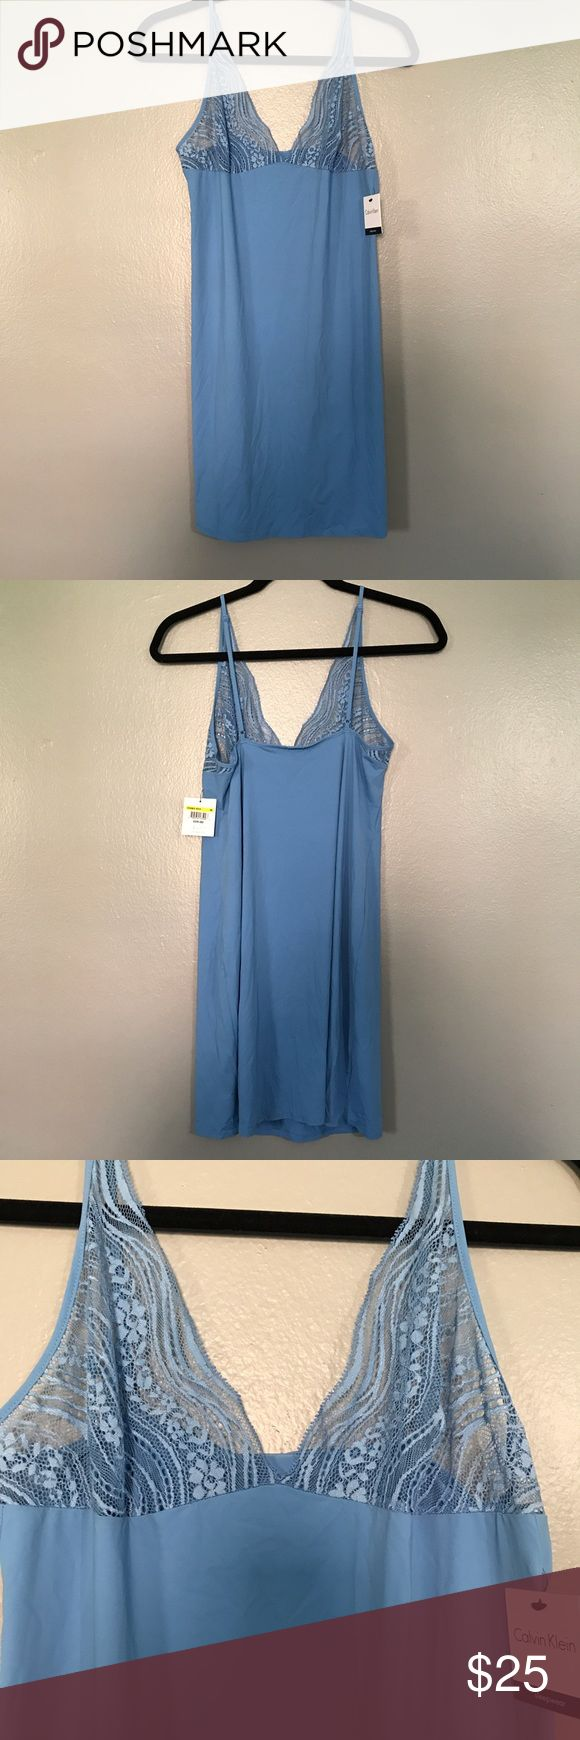 Calvin Klein Chemise - Size M Calvin Klein Sleepwear blue chemise with lace detail at bust. Adjustable straps. Calvin Klein Sleepwear Intimates & Sleepwear Chemises & Slips